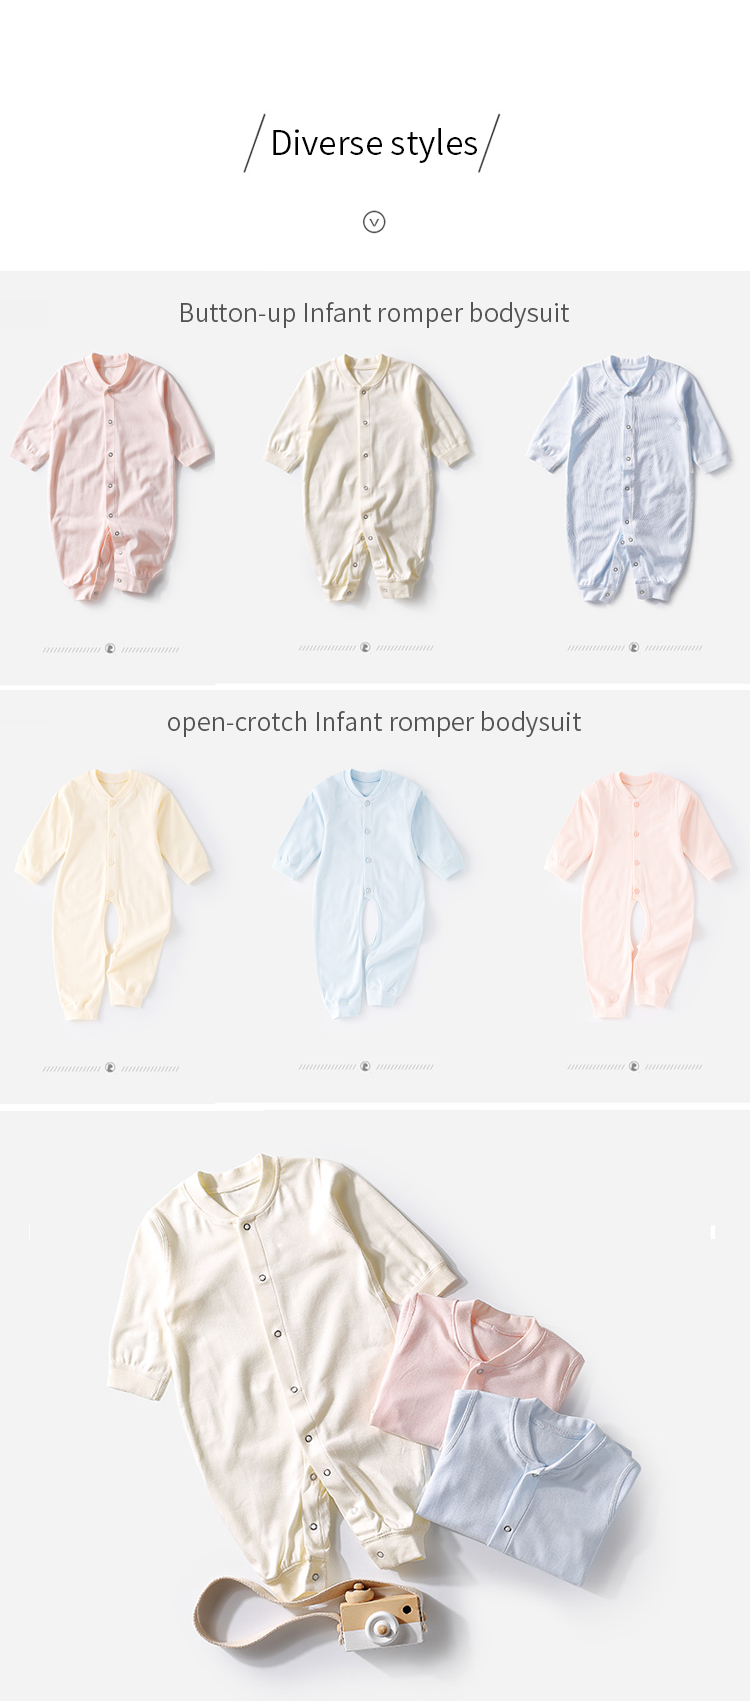 Enerup 2020 100% PLA biodegradable soft as organic cotton knit new born baby clothes clothing romper jumpsuit set